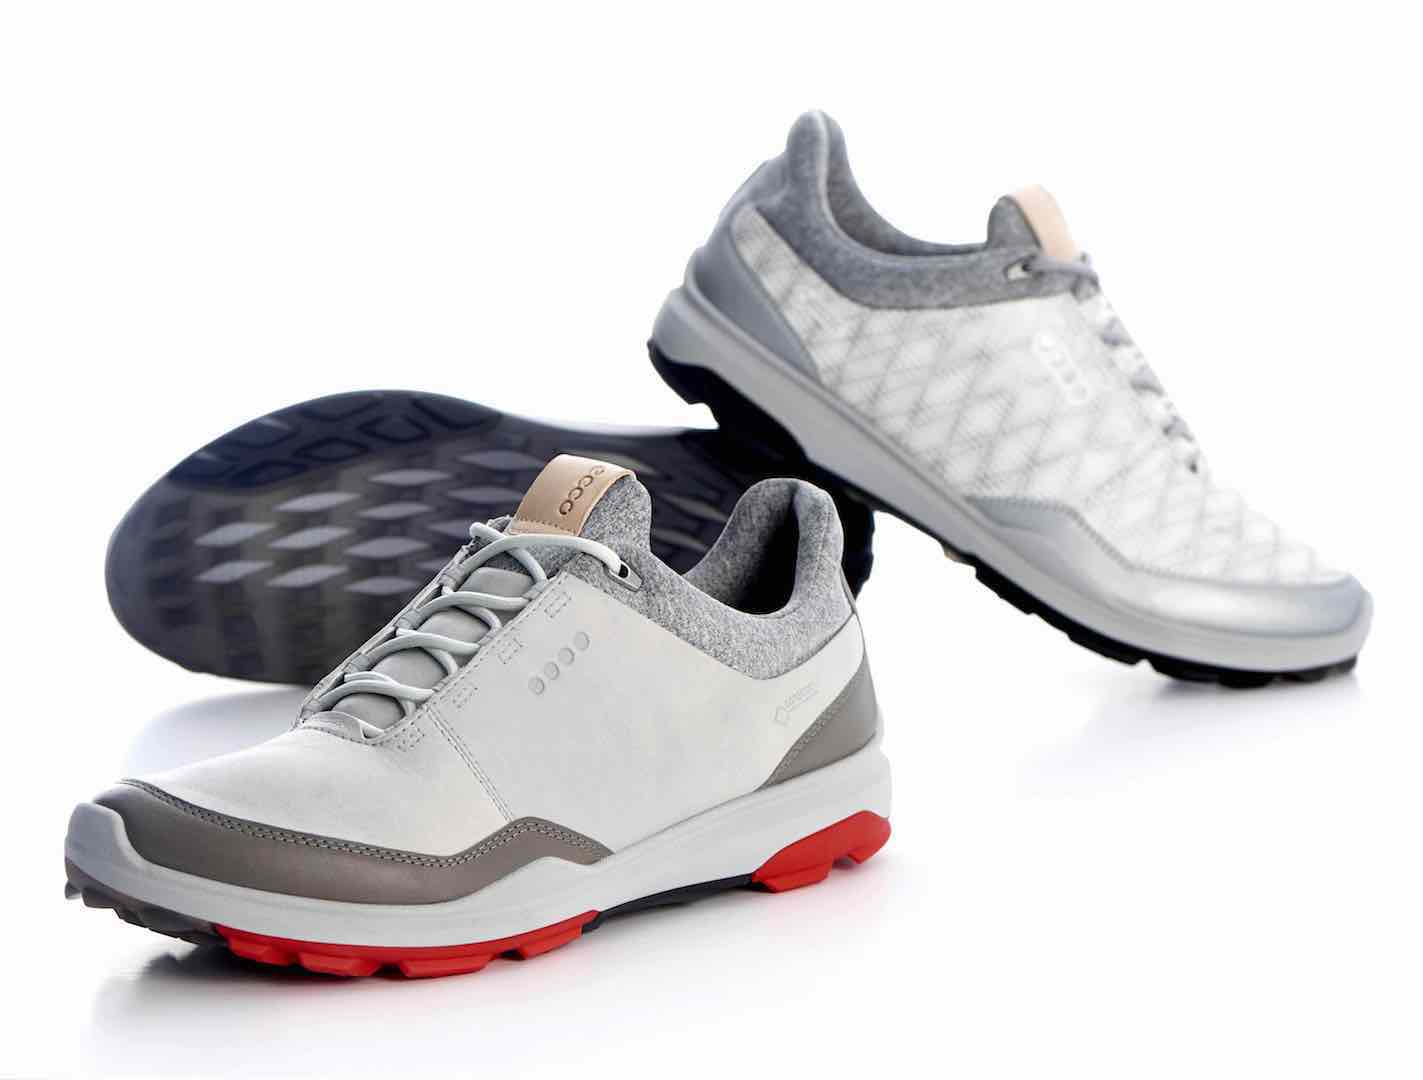 ECCO breaks traction and stability boundaries